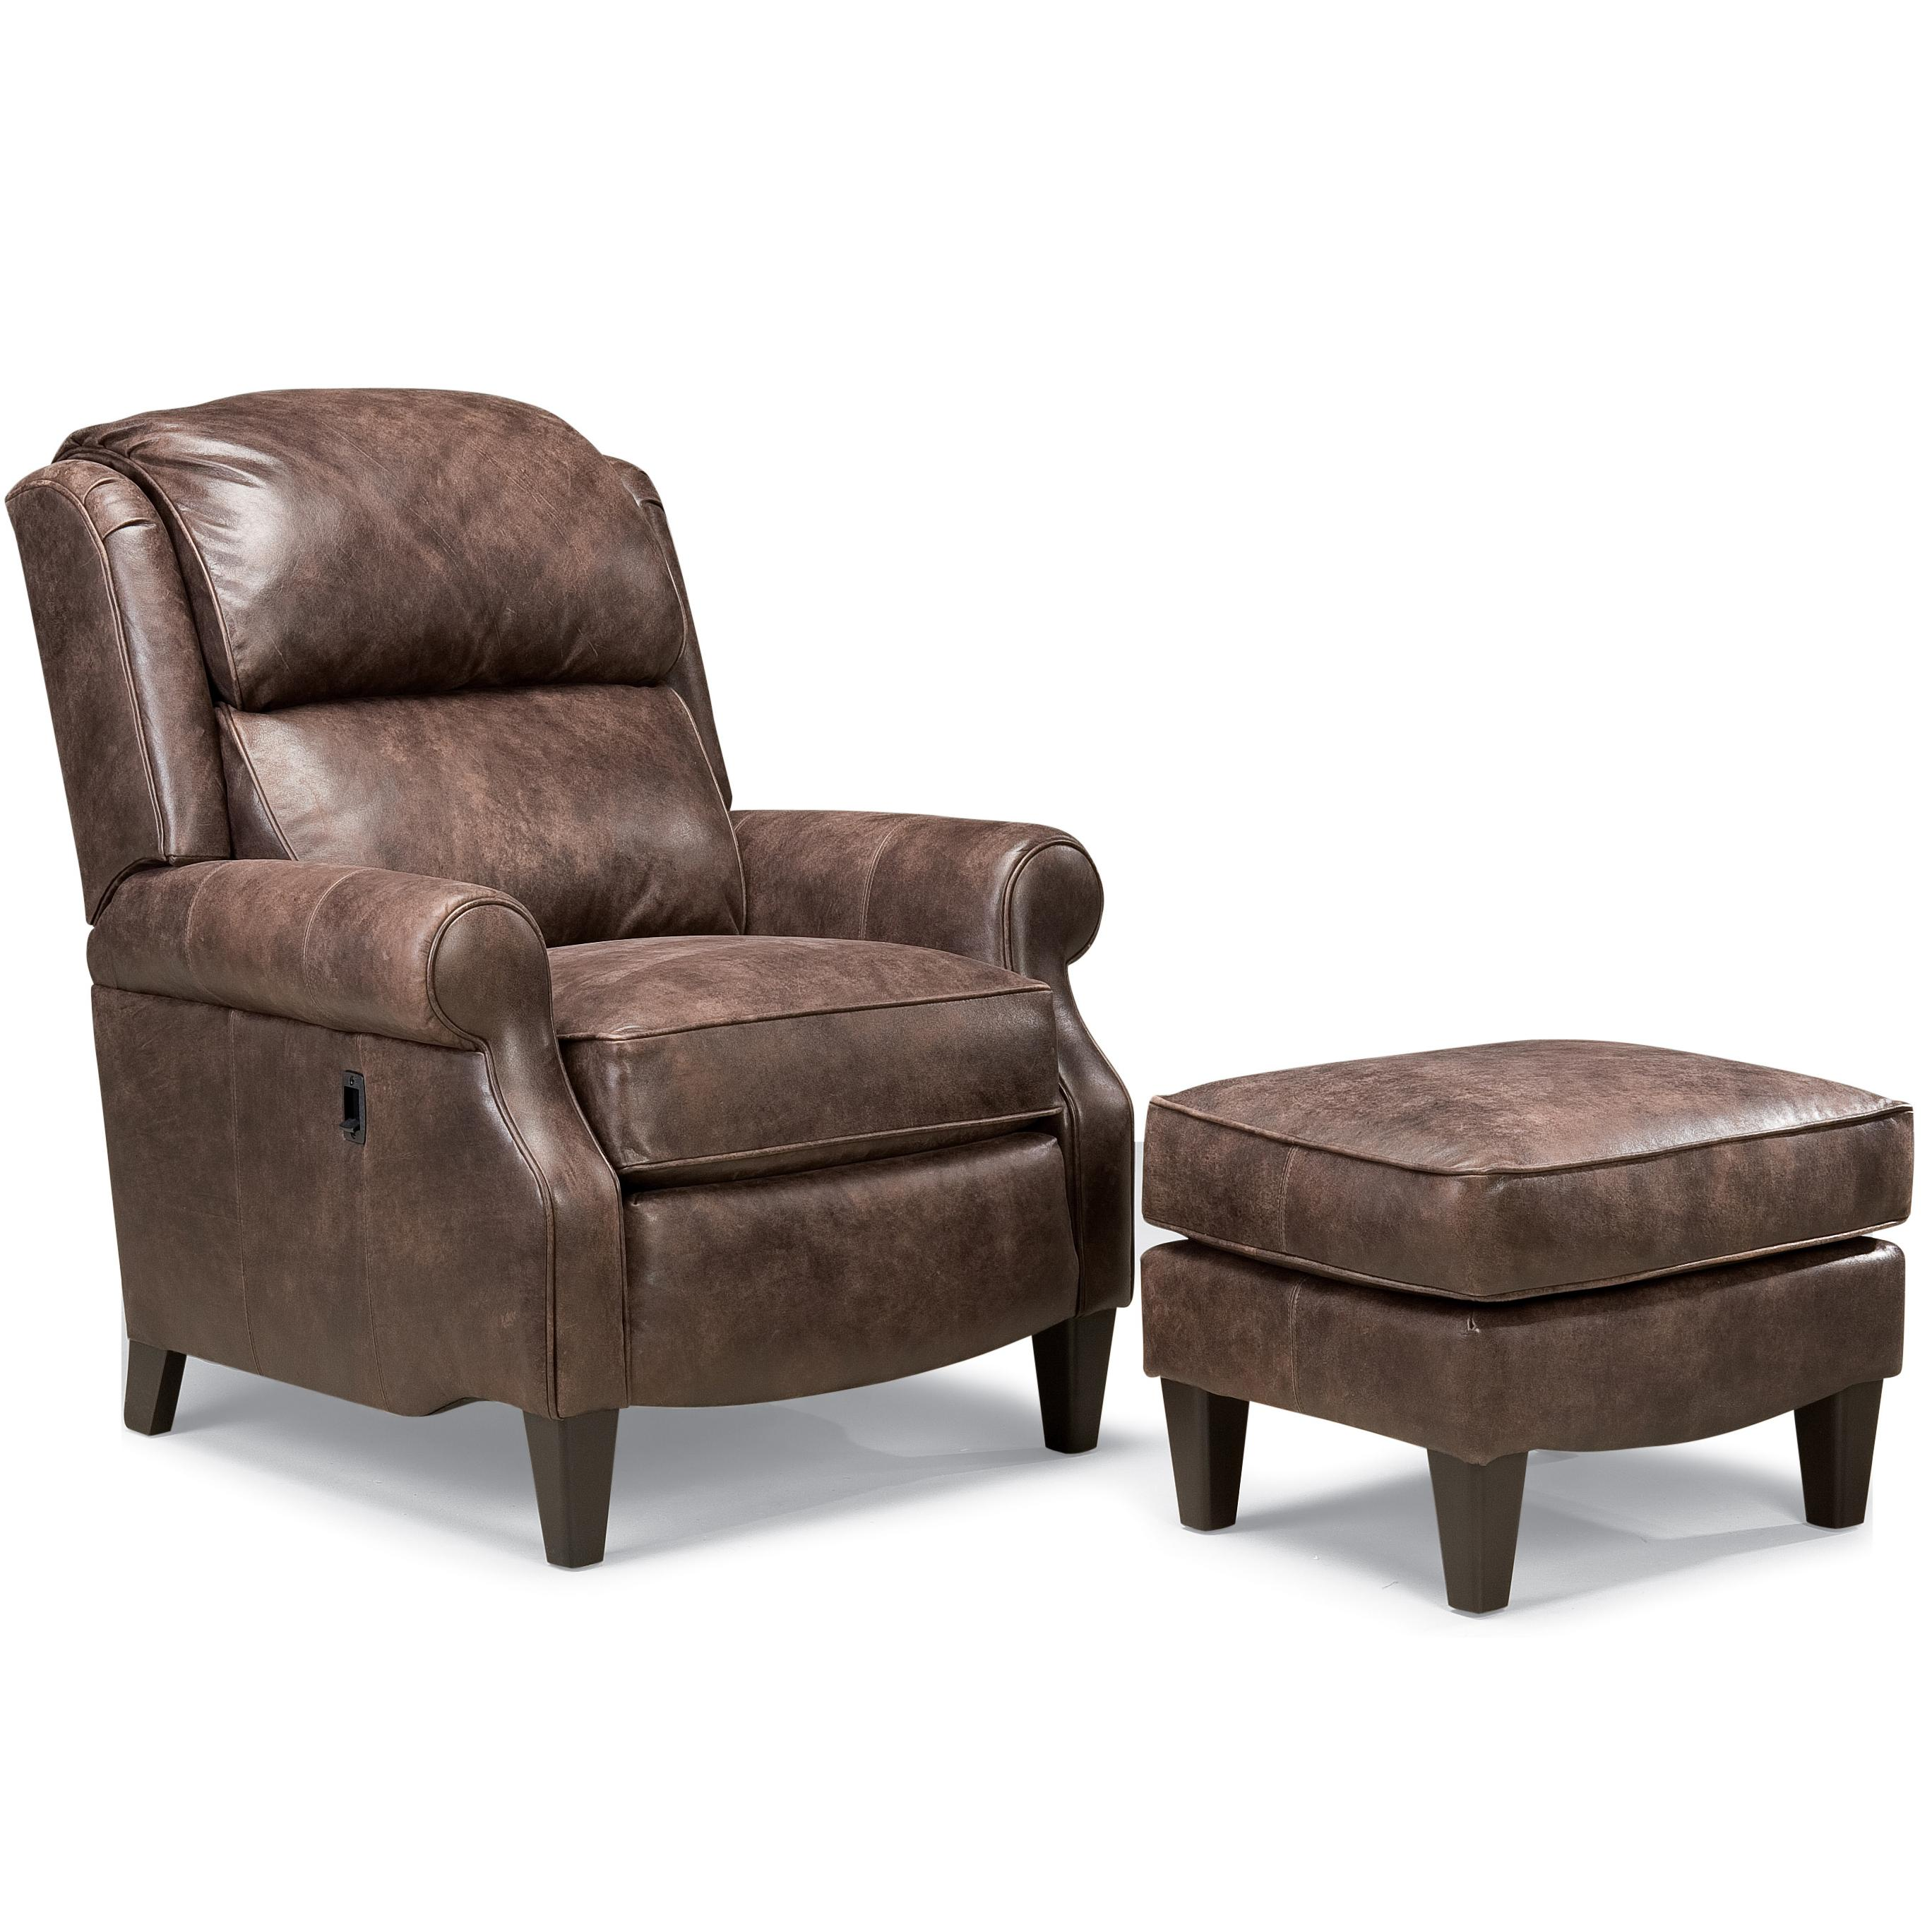 Traditional Leather Big And Tall Pressback Reclining Chair With Rolled Arms  With Ottoman